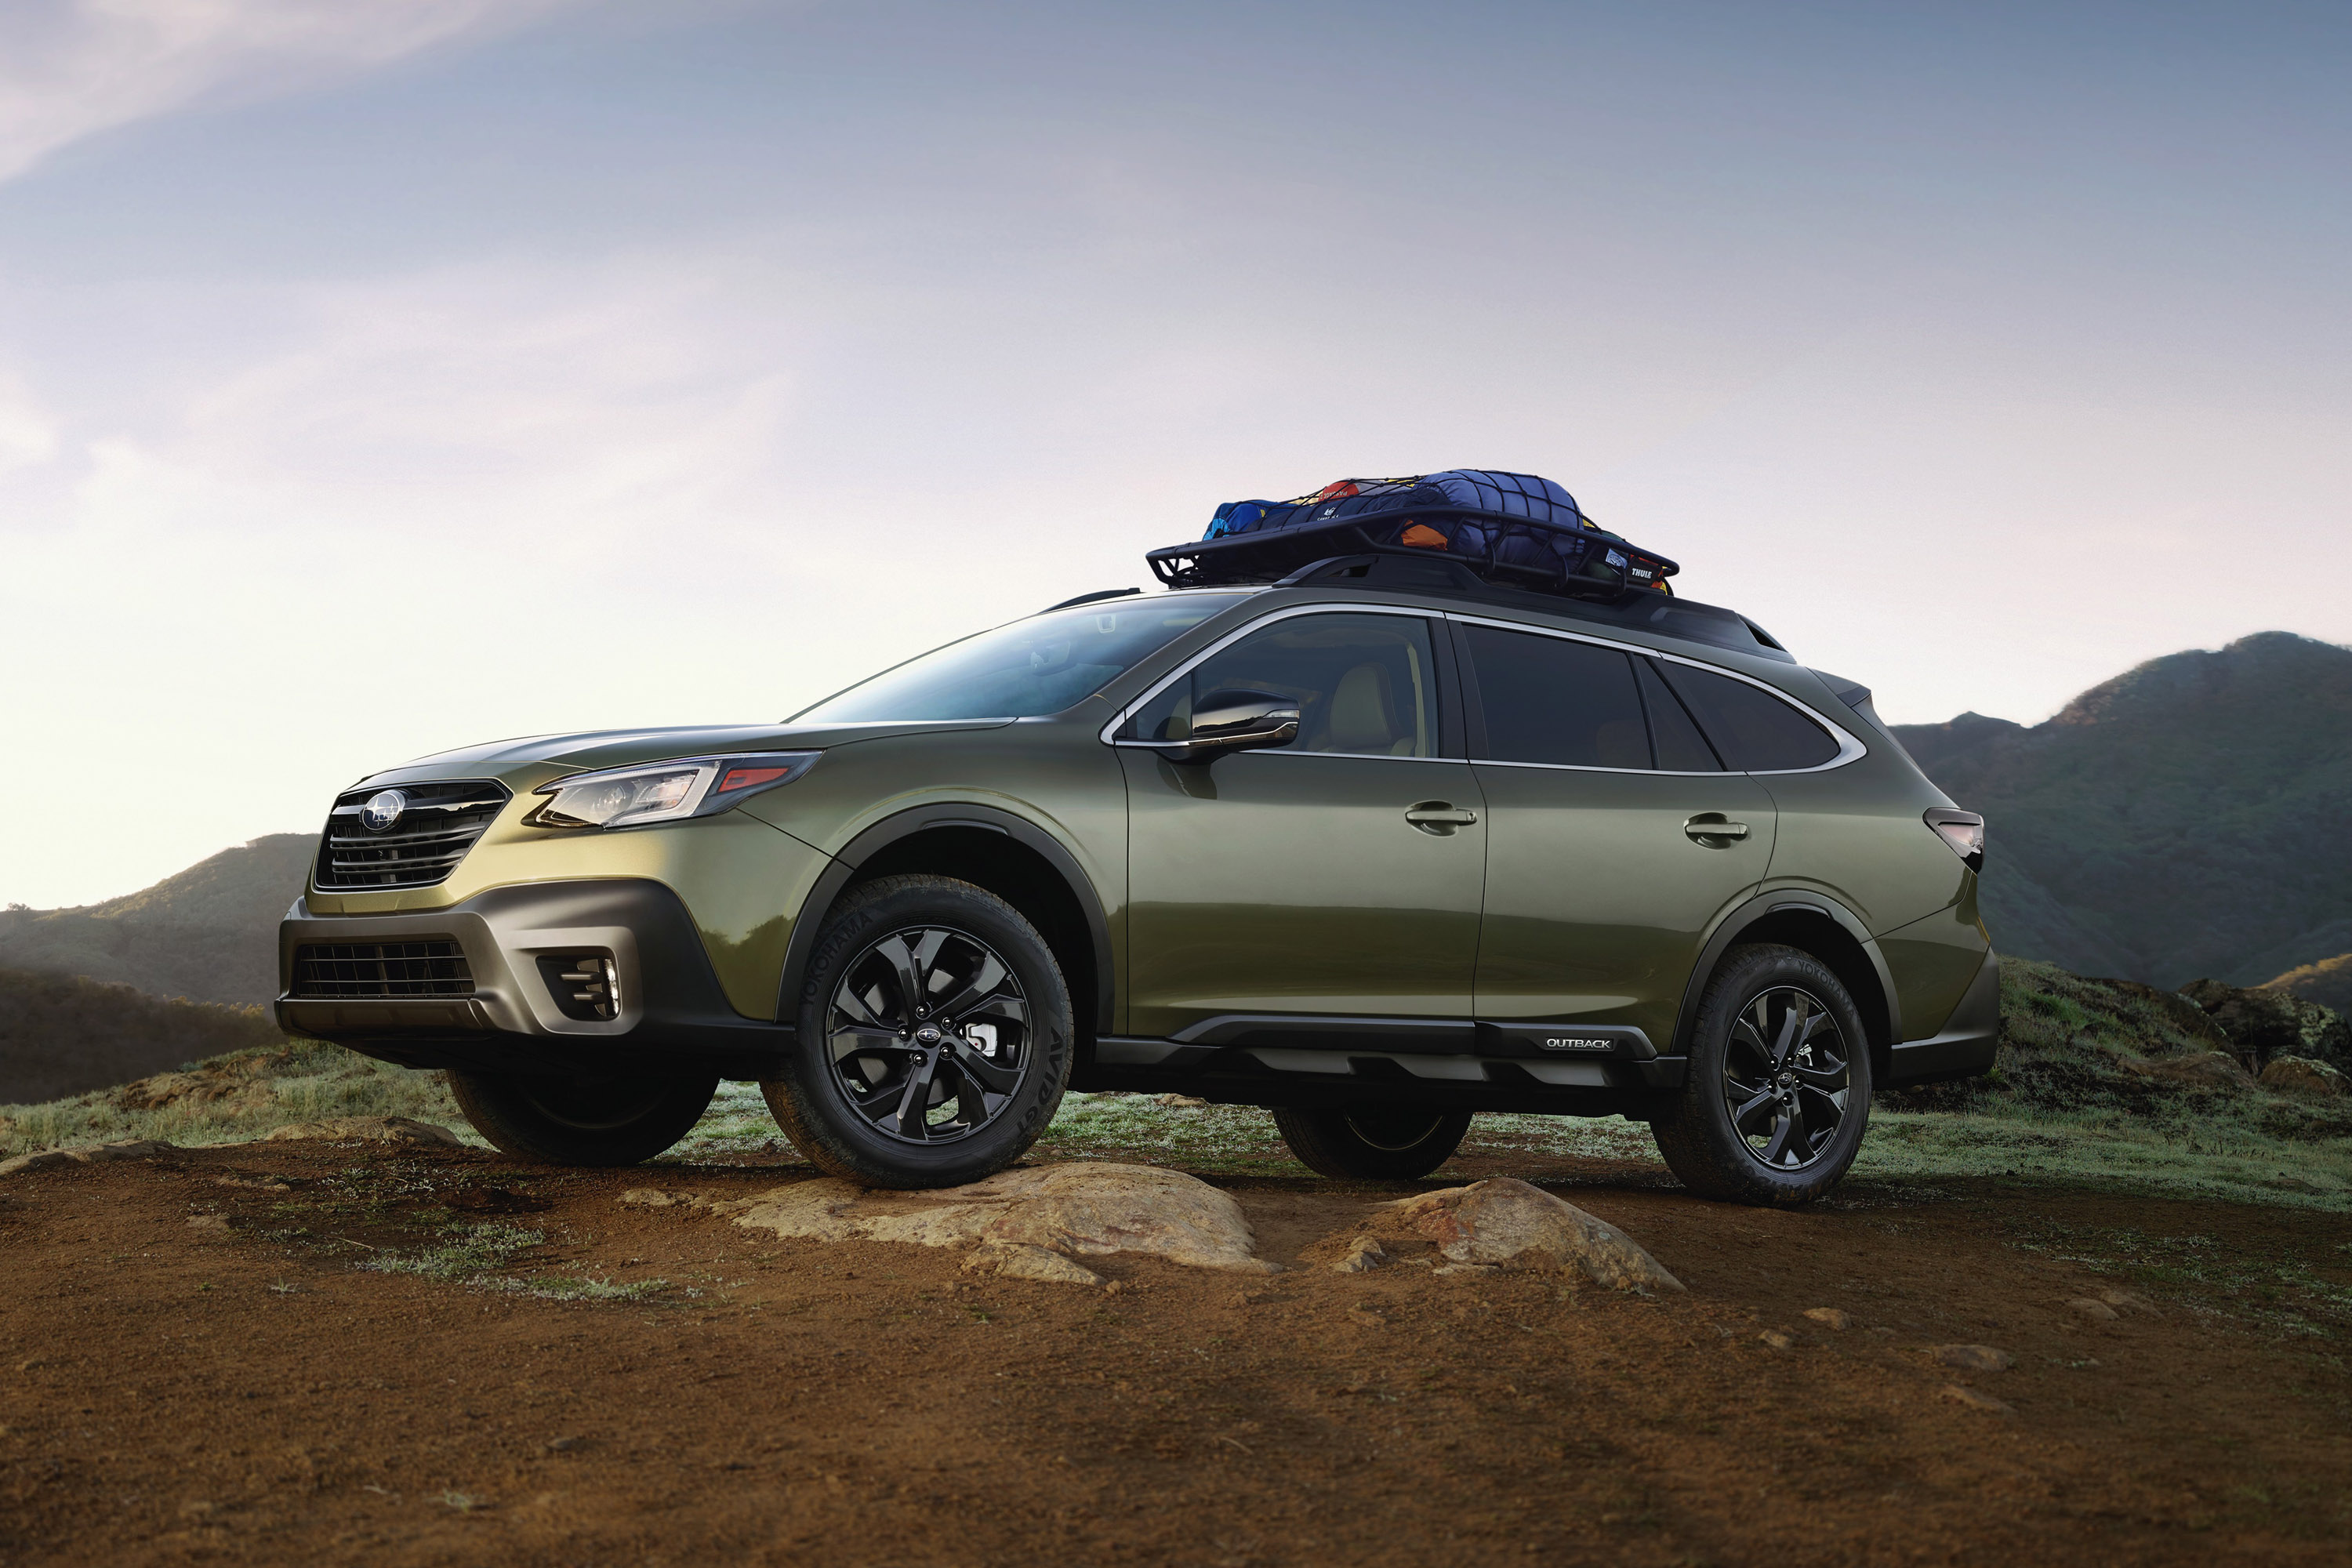 Best Suv For Obese Drivers 2020 The Best 2020 SUVs: Top Vehicles From NYIAS | GearJunkie